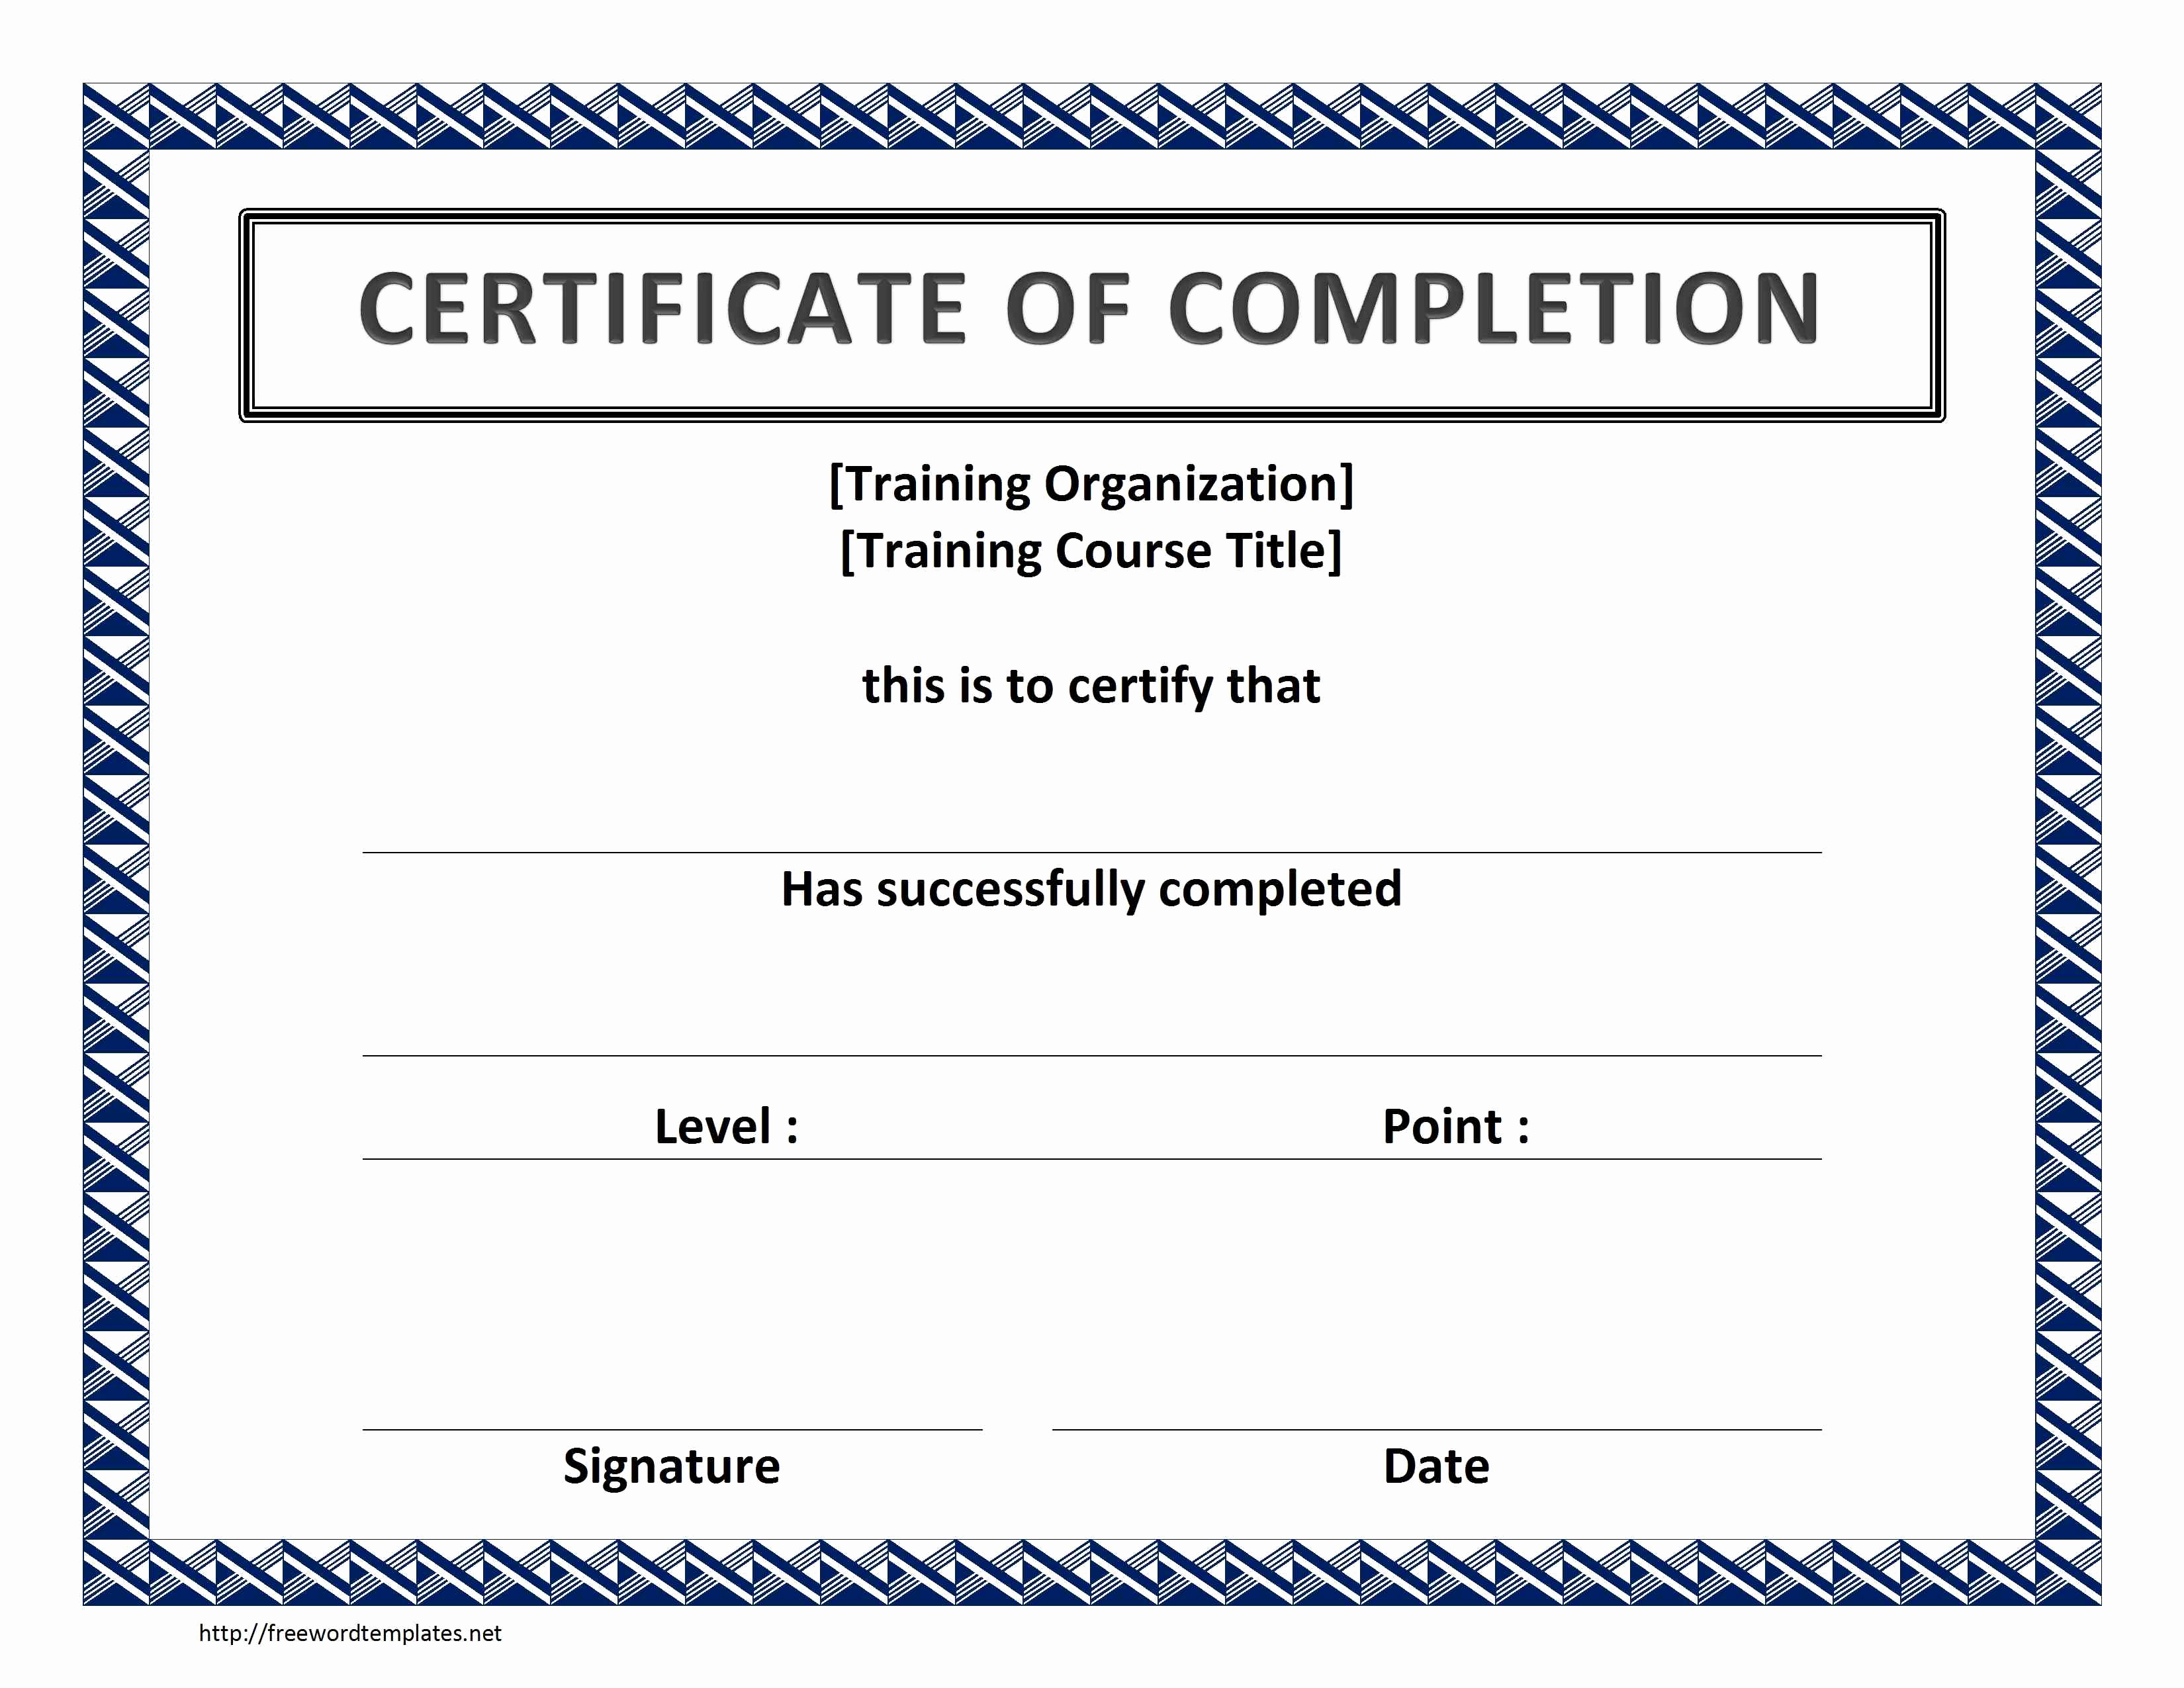 Certificate Of Completion Template Free Best Of Training Certificate Template